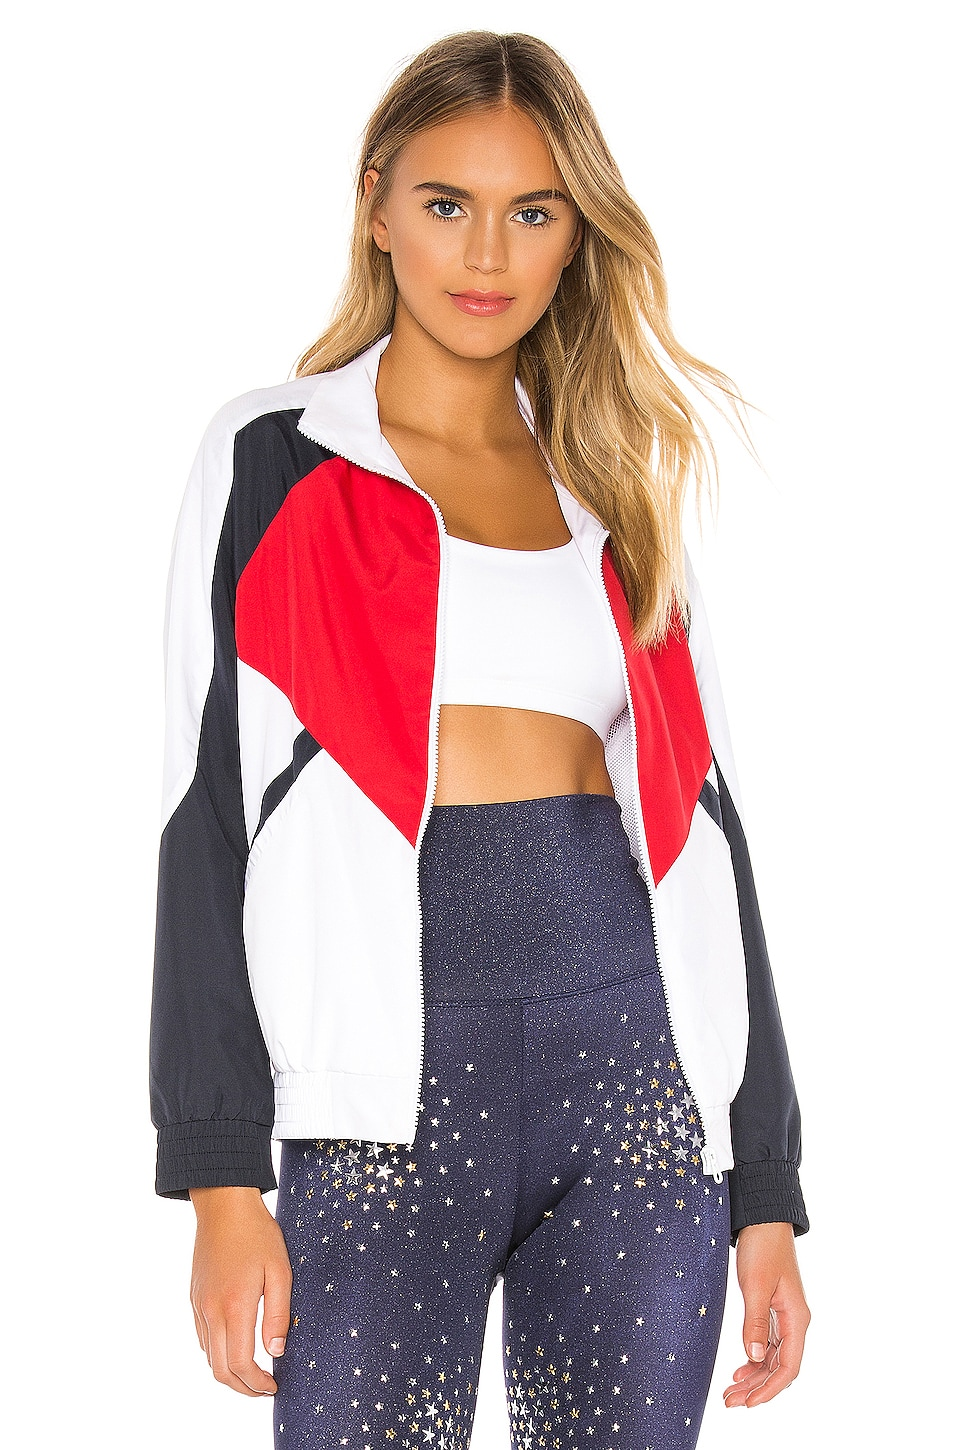 BEACH RIOT Jacket in Red, White & Blue